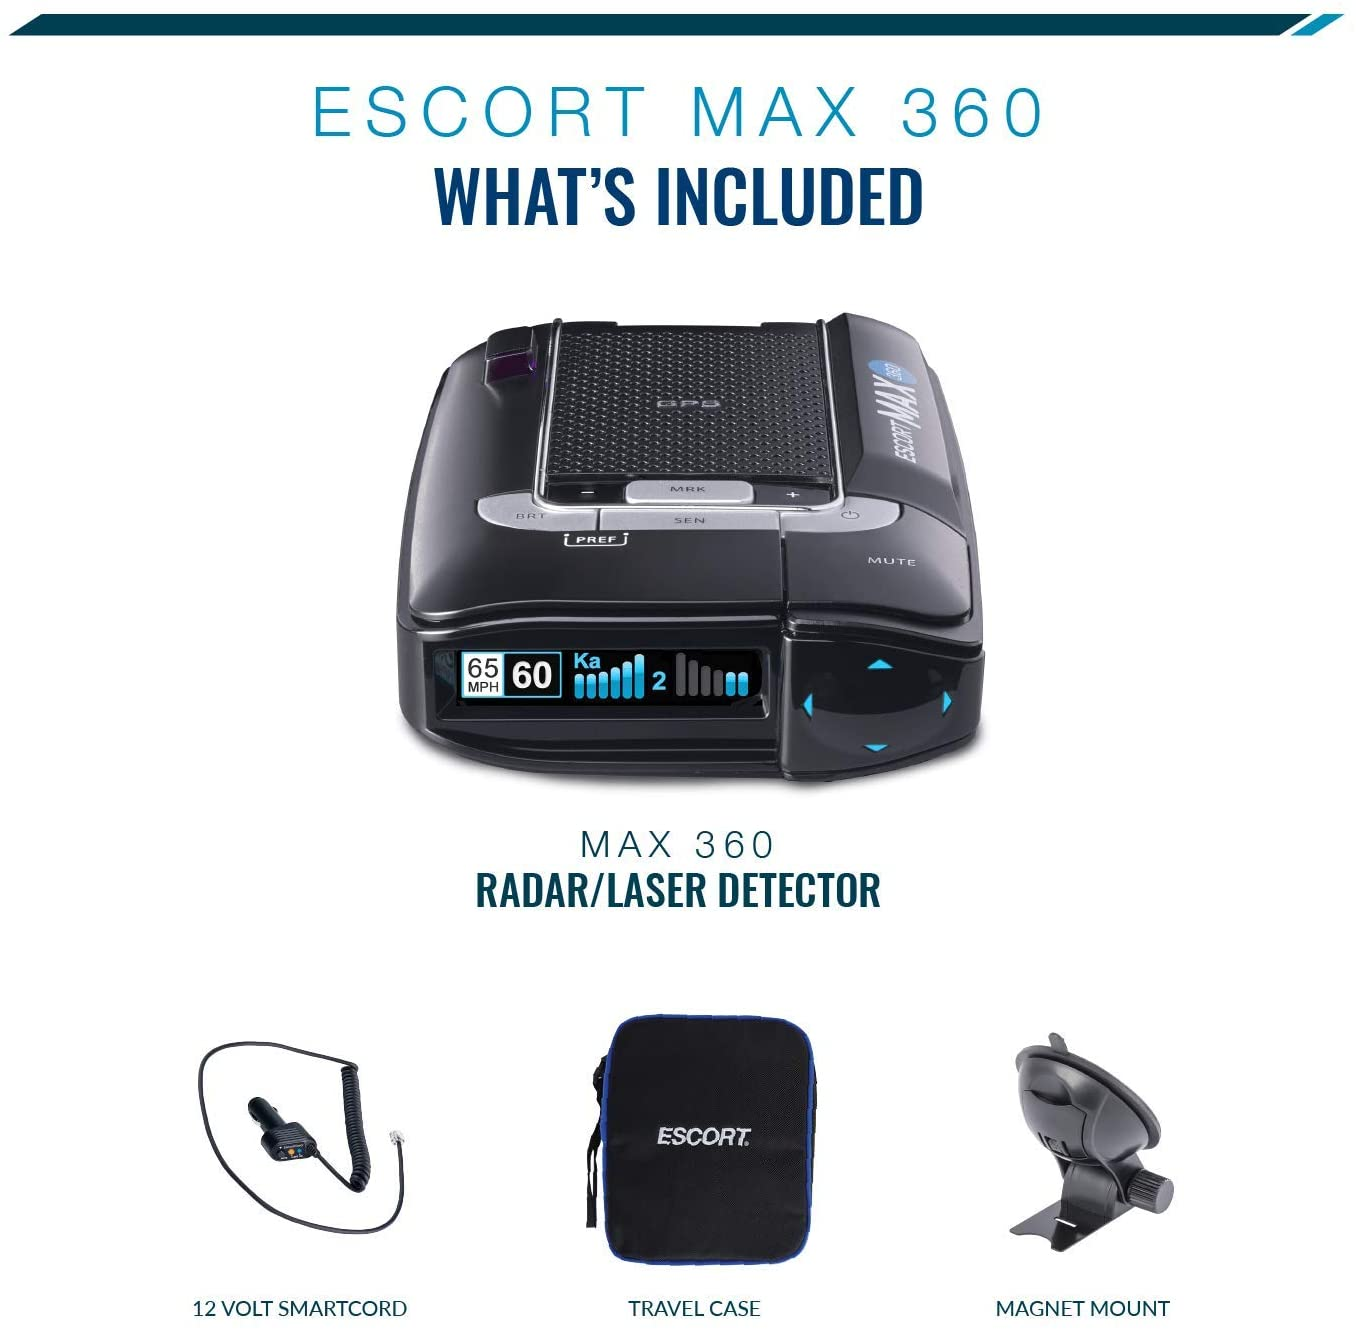 Escort Max 360 together with the accessories that comes with a purchase